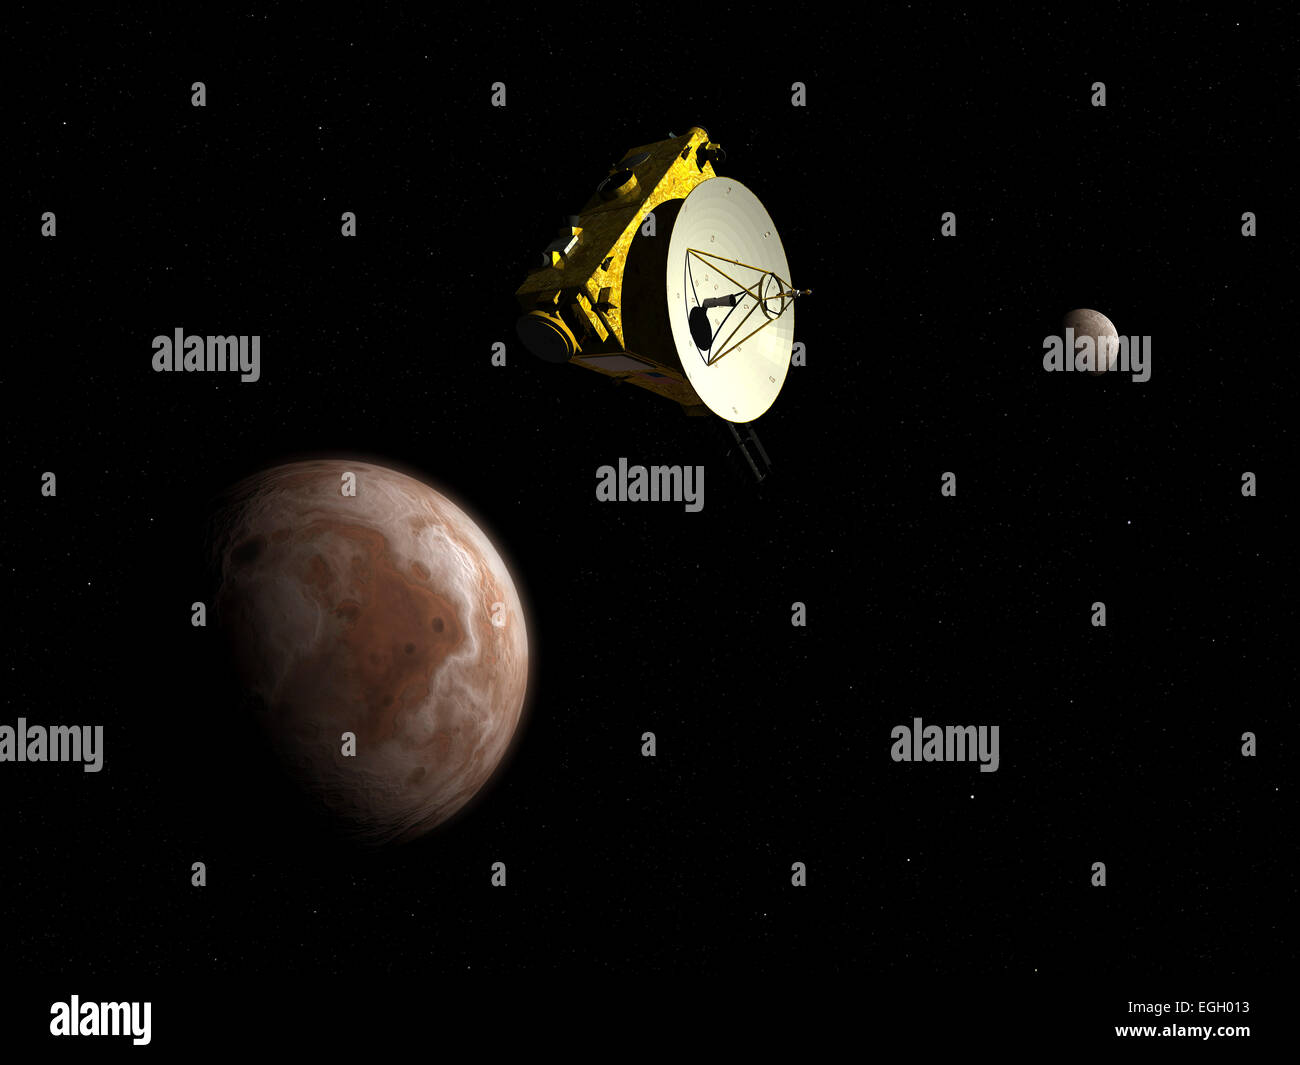 NASA's New Horizons unmanned spacecraft flies by dwarf planet Pluto and its moon Charon. New Horizons has been en - Stock Image